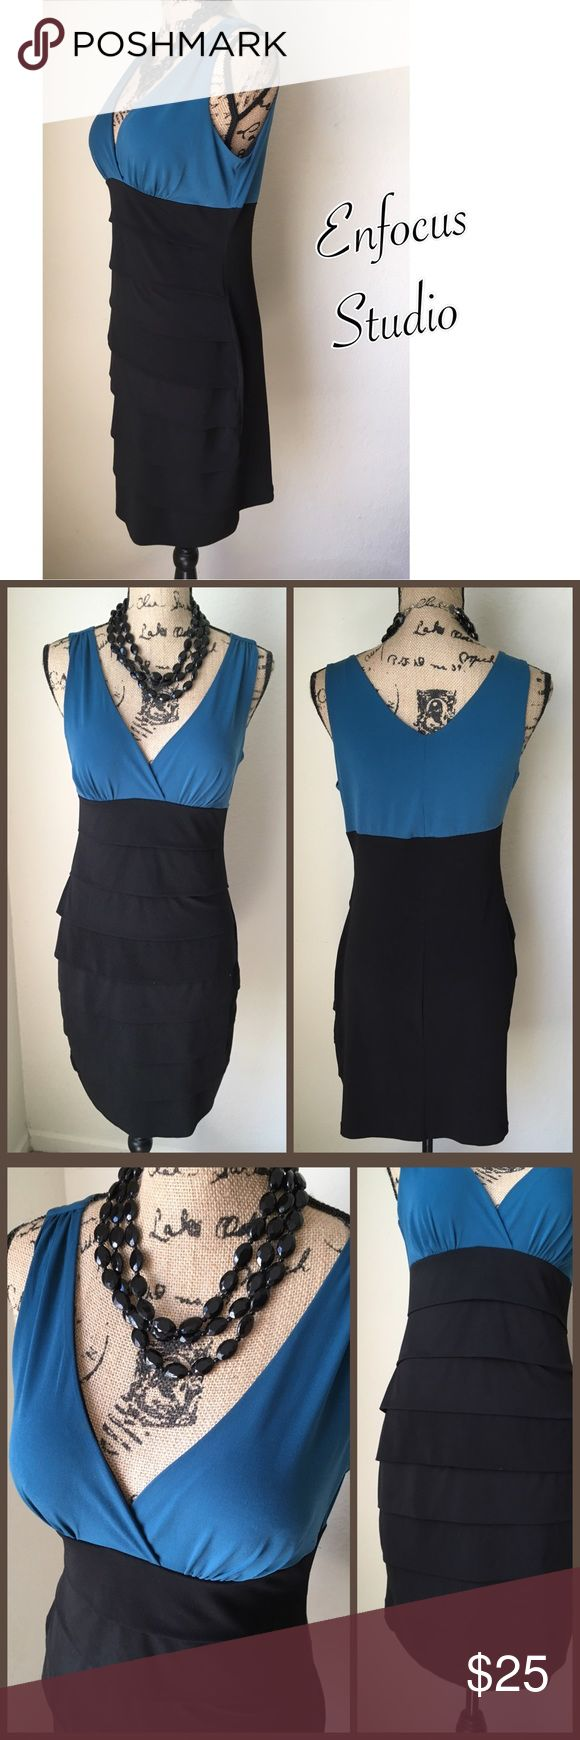 Enfocus Studio Cocktail Dress Enfocus Studio Cocktail Dress. Black and Teal with tiered layering. Quality constructed dress in excellent condition. Body con style to contour your curves, lined bodice with lightly padded cups. This dress is even more gorgeous in person! Enfocus Studio Dresses